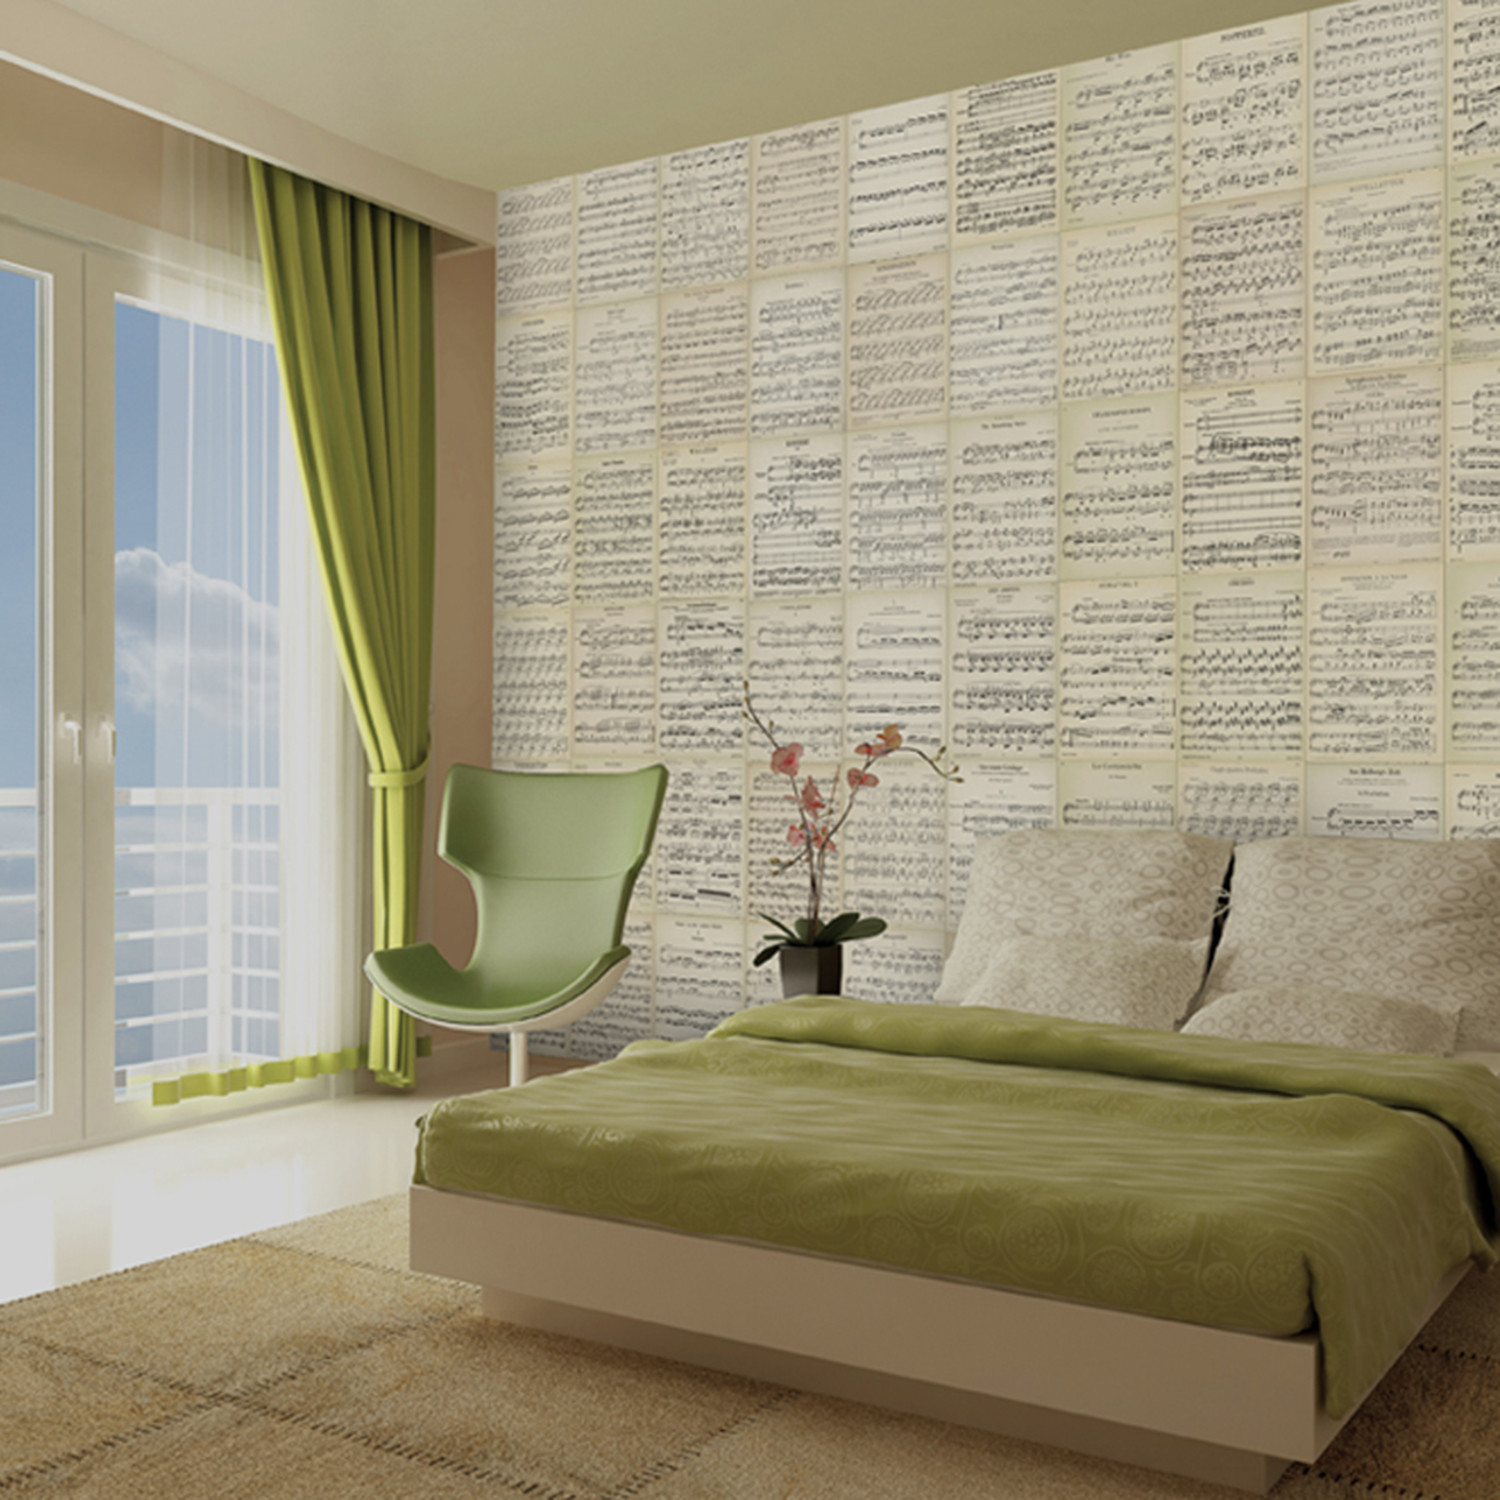 creative collage music sheets 1 wall murals touch of modern